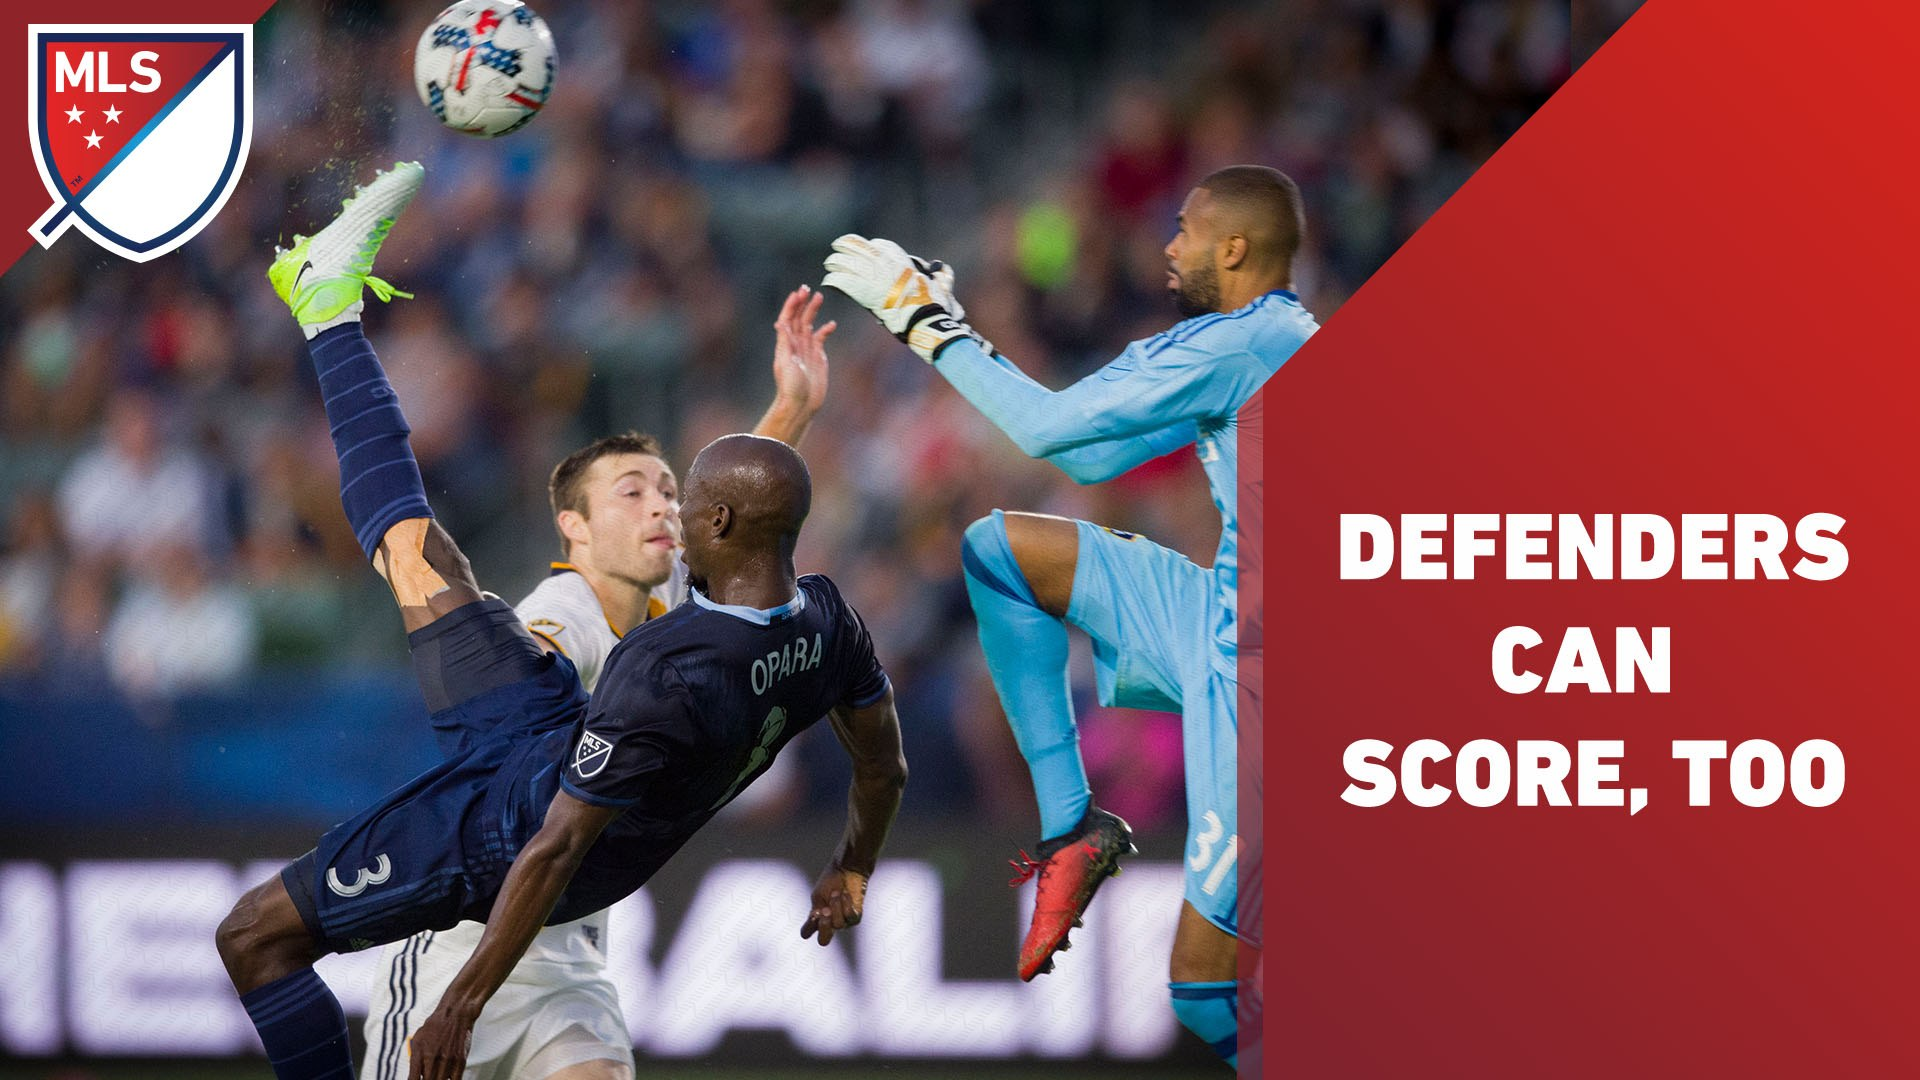 The best goals by defenders in MLS history